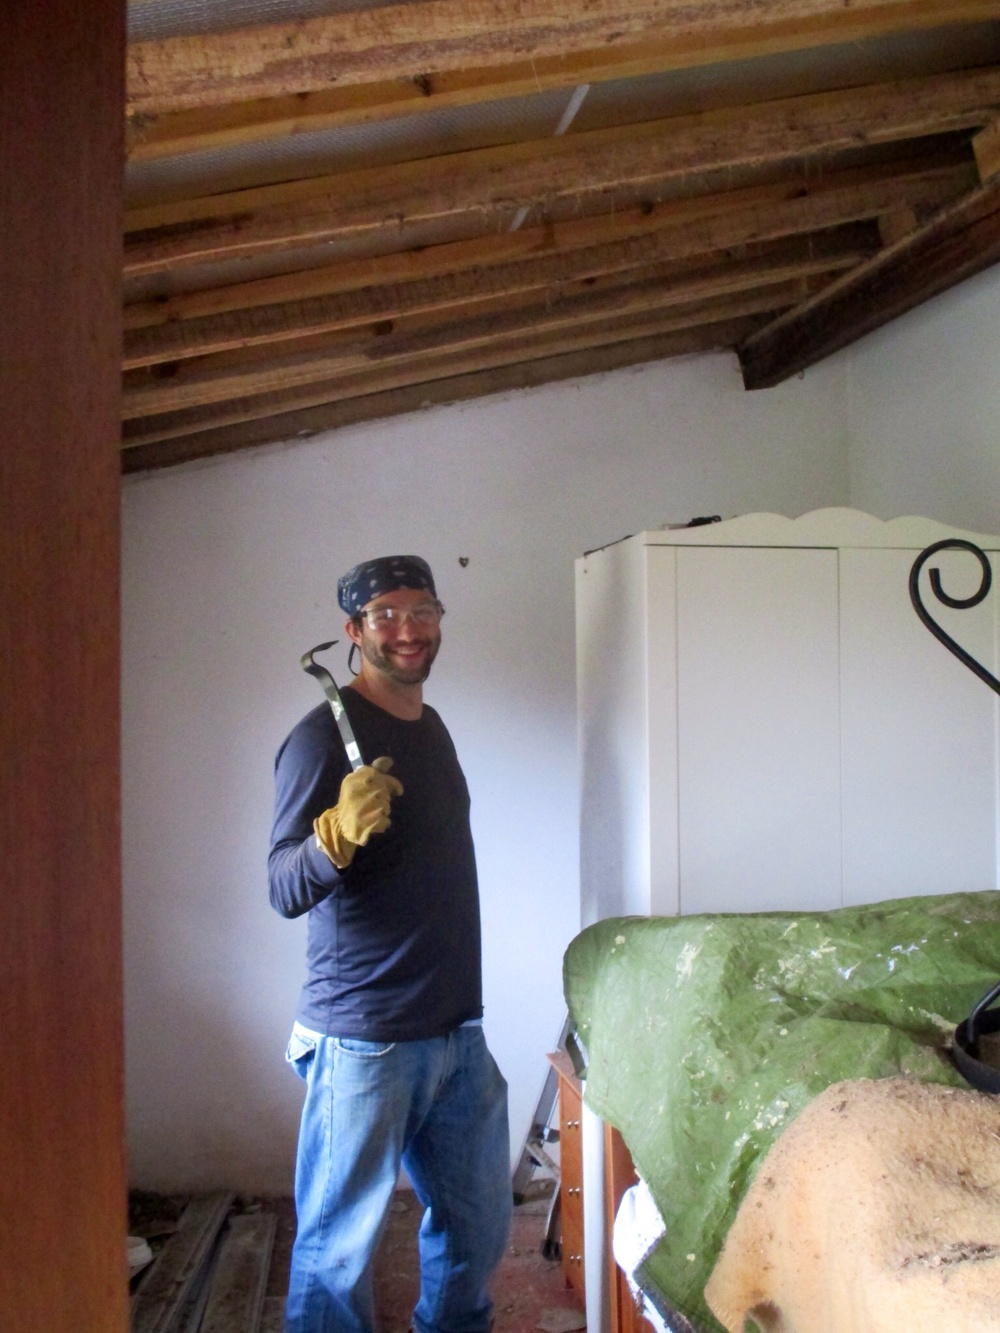 The demolition phase, while very dirty, helped relieve some of the stress of the project.